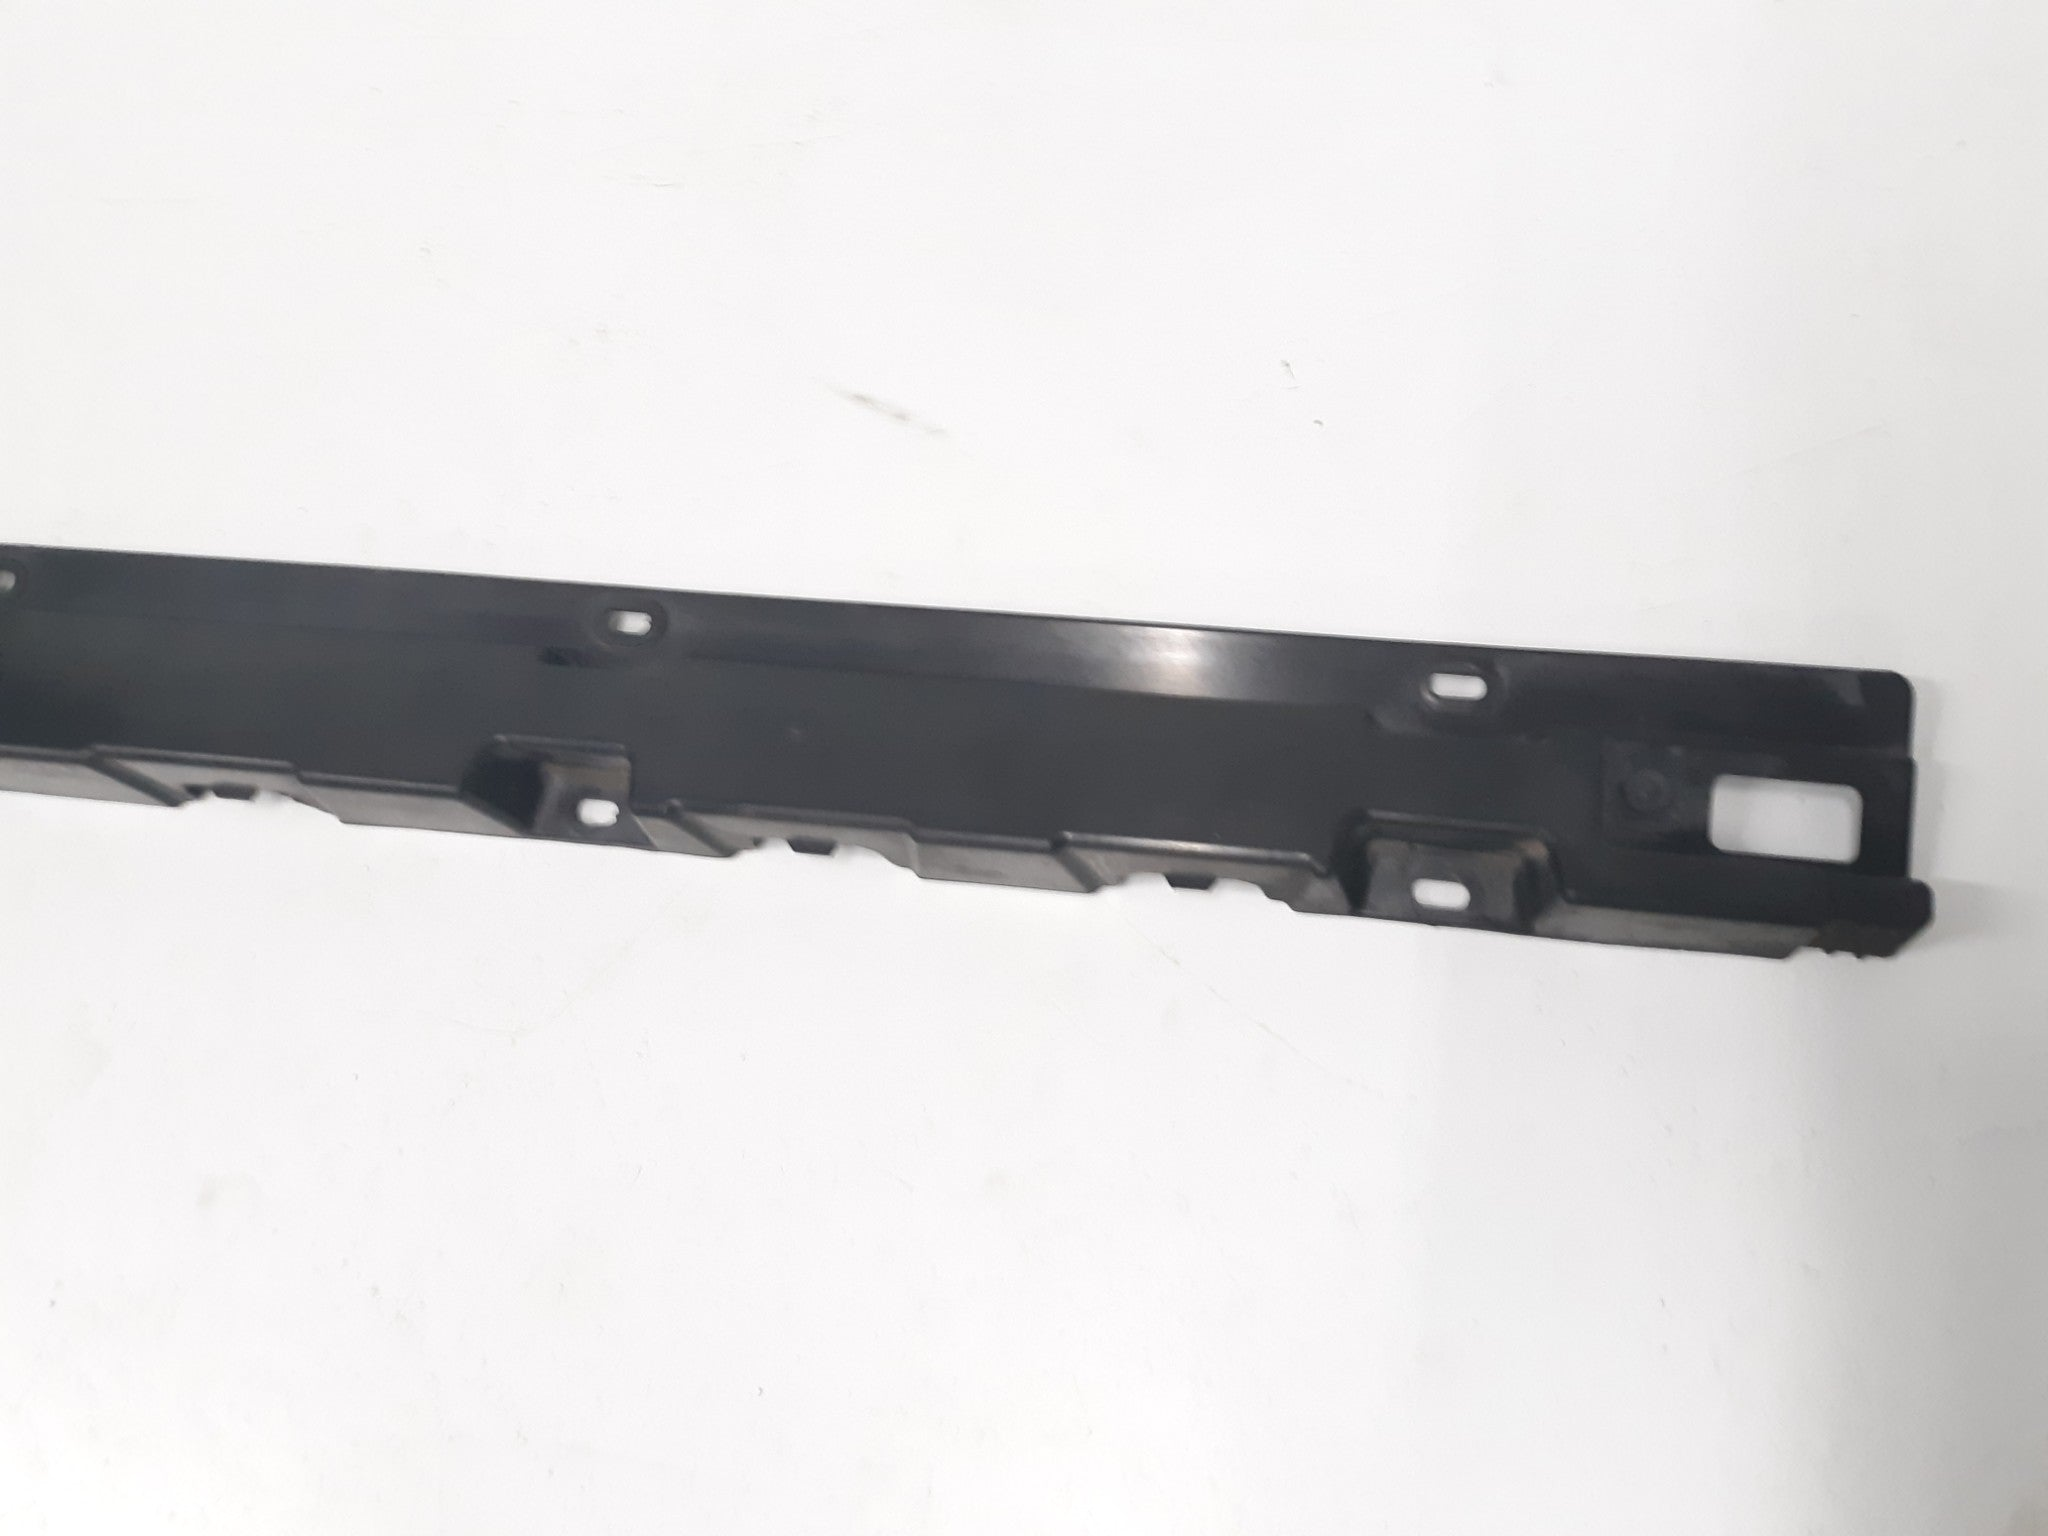 BMW E83 X3 LEFT DRIVER SIDE SKIRT ROCKER PANEL BRACKET TRIM 2004 2010 OEM